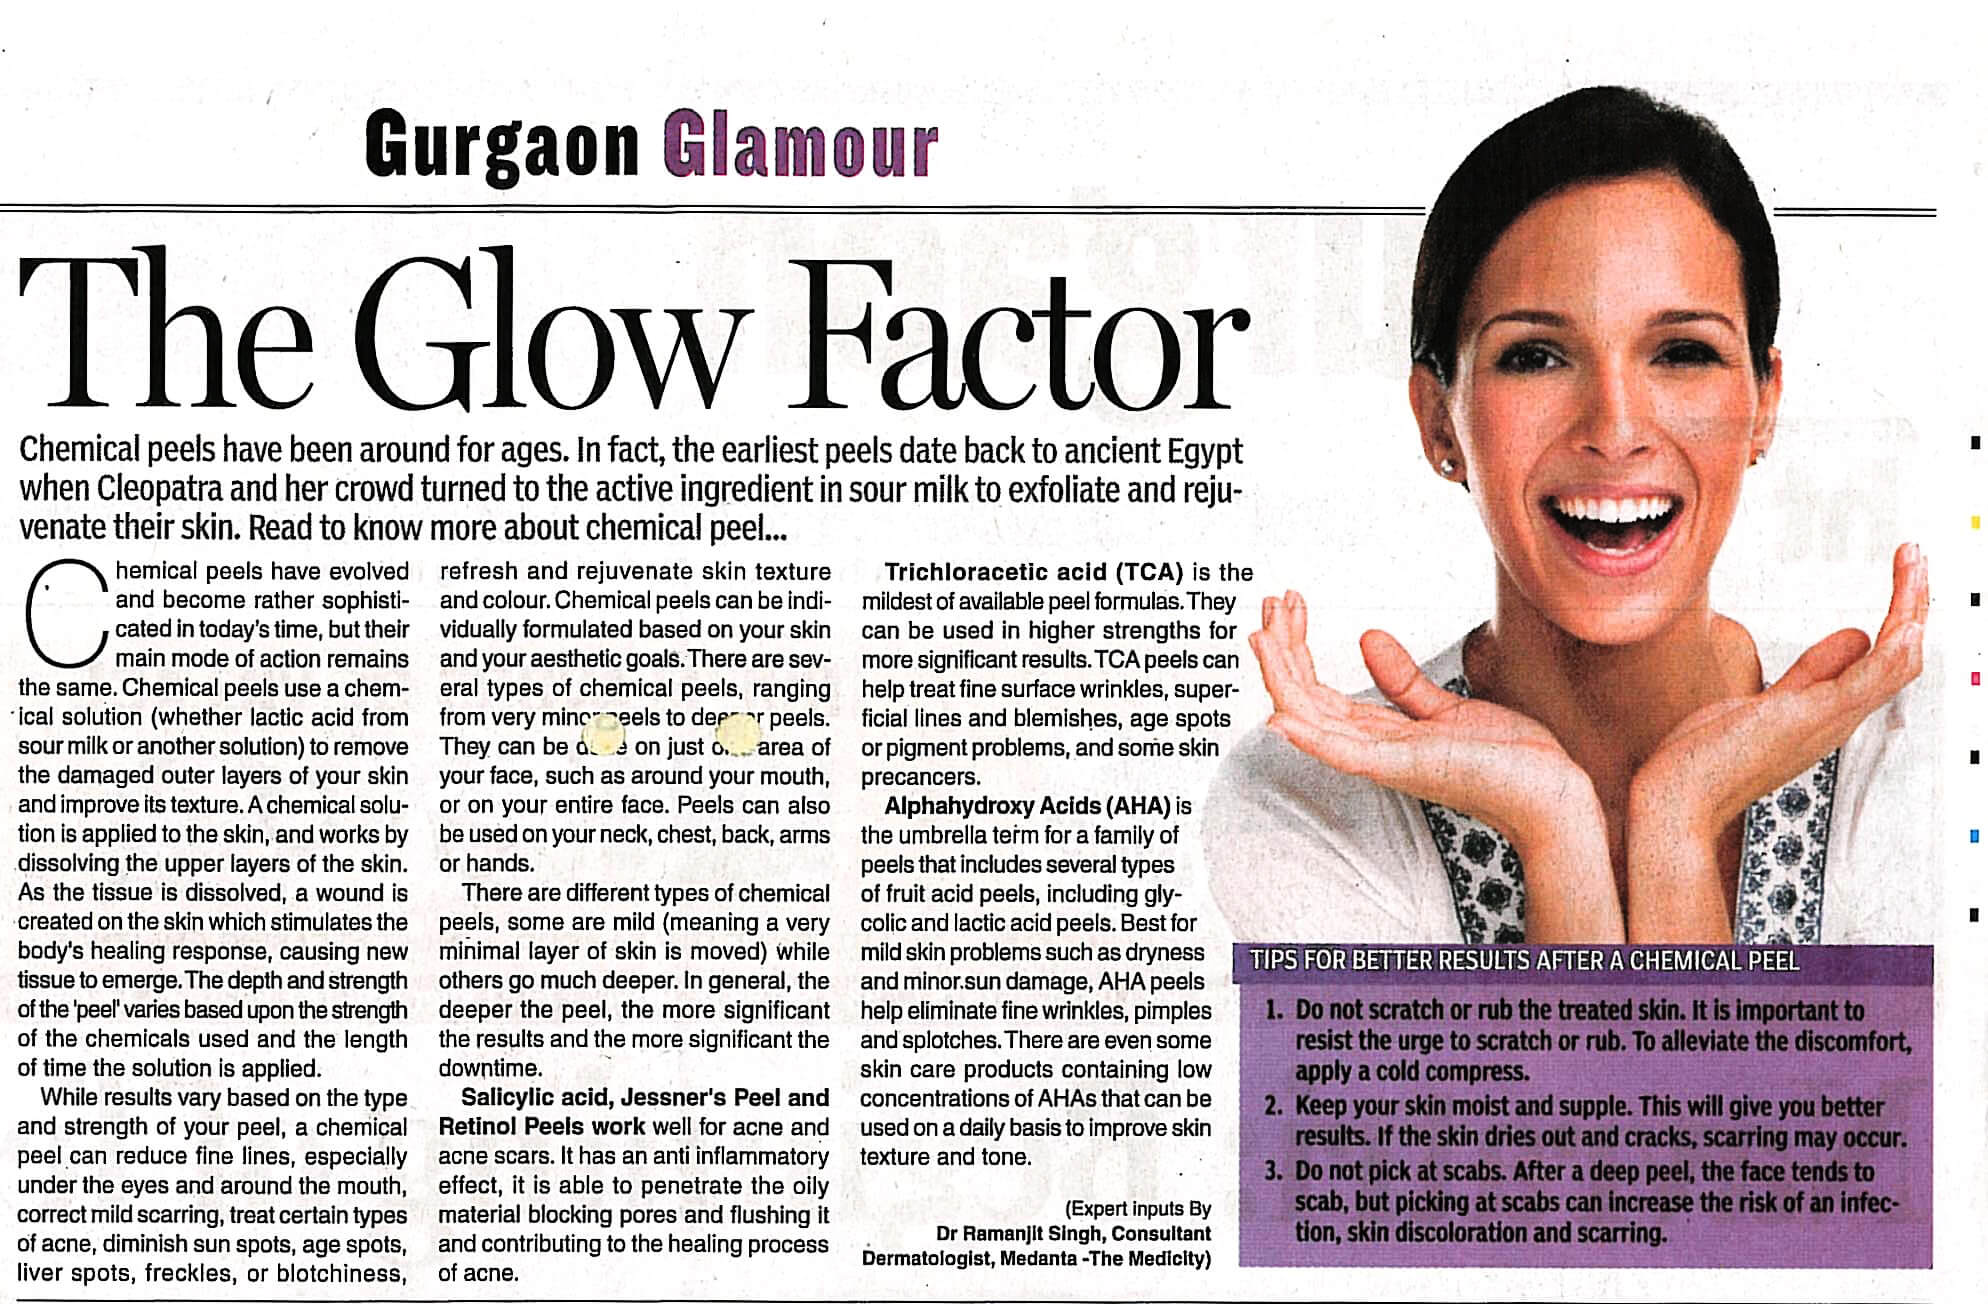 The Glow Factor